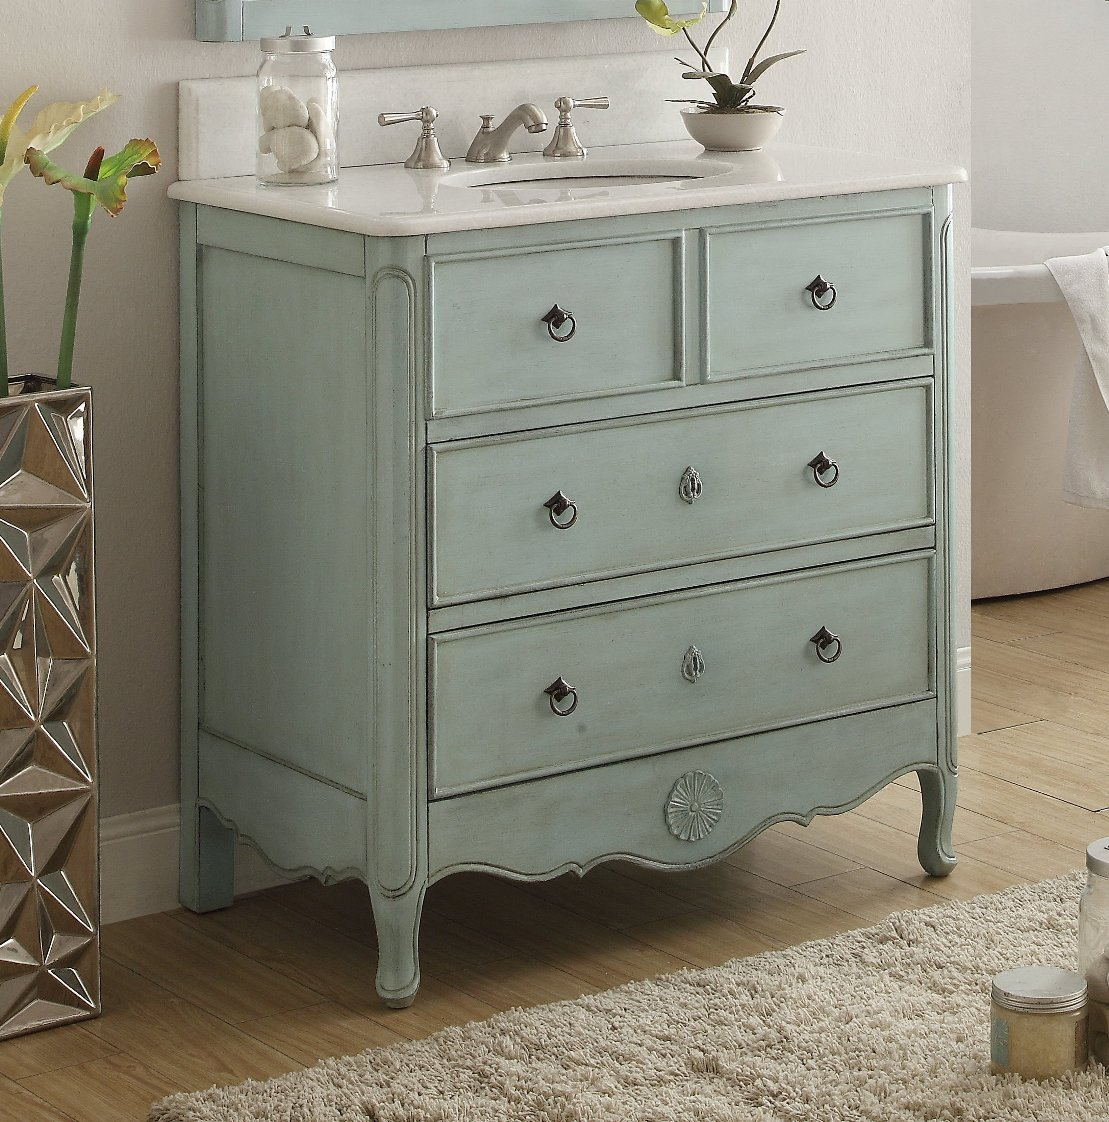 34 Inch Bathroom Vanity Cottage Beach Style Vintage Light Blue Color Wx21 Dx35 H Chf081lb